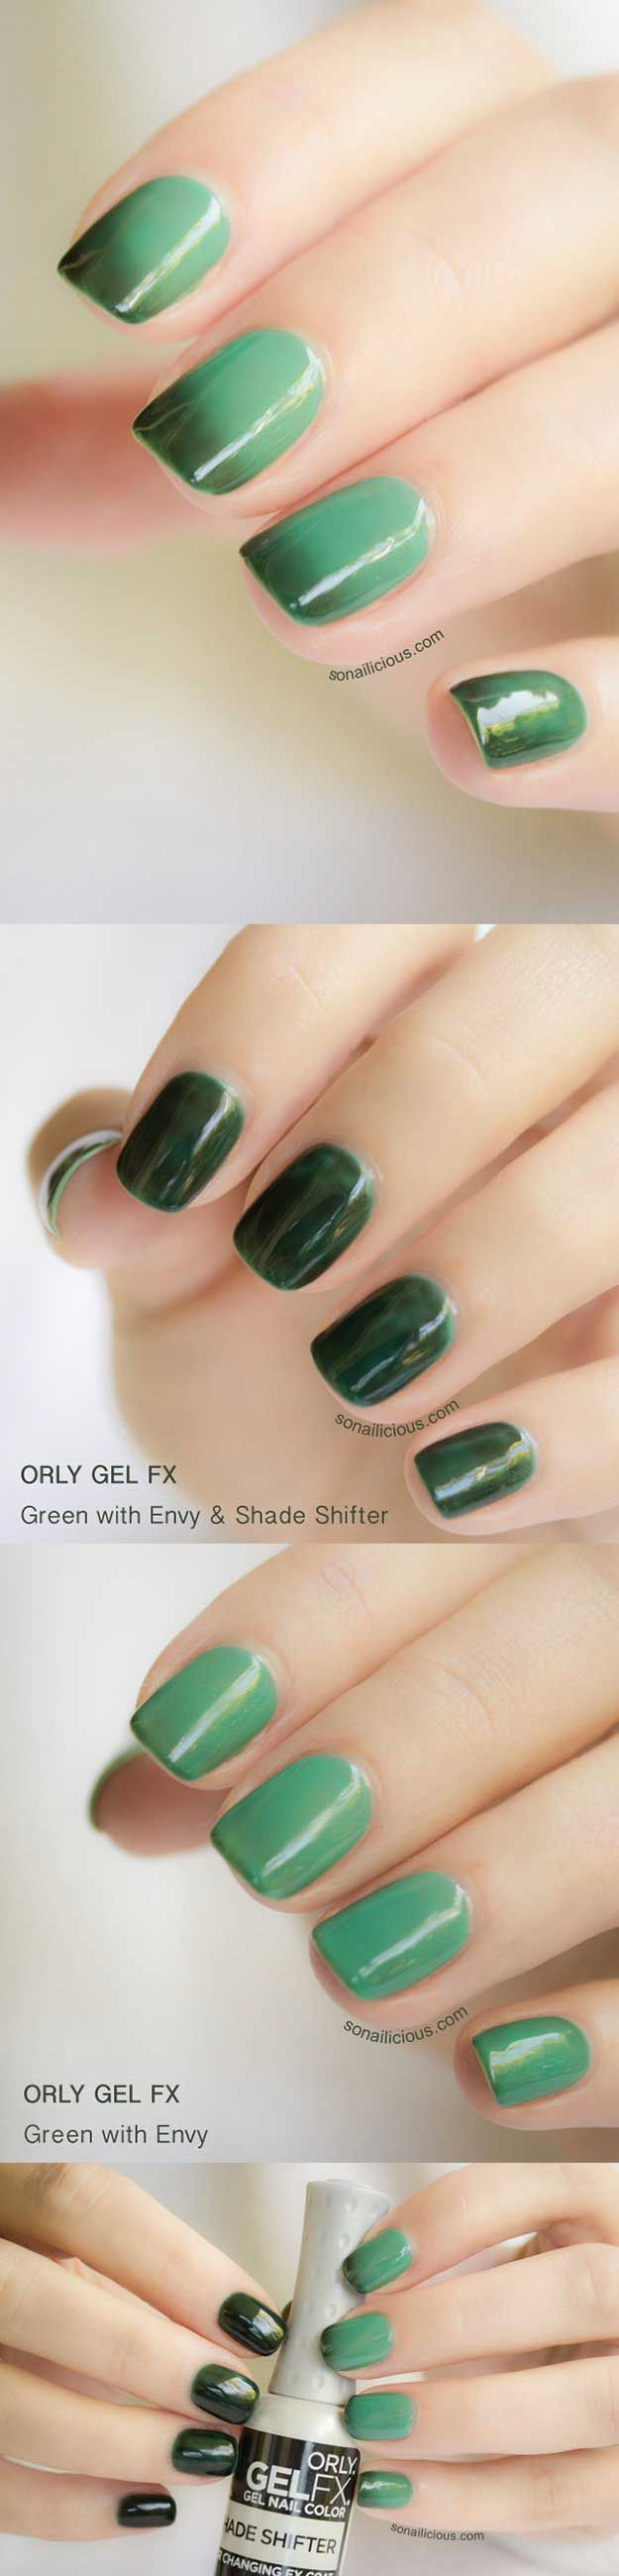 Best Gel Nail Designs - Orly Gel Fx and Orly Gel Fx Shade Shifter - Beautiful Gel Nail Designs And Pictures Of Manicures And Nailart To Give You Some Awesome Fashion Style. Step By Step Tutorials And Tips And Tricks And Ideas For Shape And Colour. Polish And Shape Your Nails To Match Your Makeup And Follow These Art Tutorials To Get That Sparkle In Your Tips. Try The Best Gel Nail Designs With Ideas For Summer, Fall, Spring, And Winter. Gel Nail Art Is Awesome And Goes Great With These…